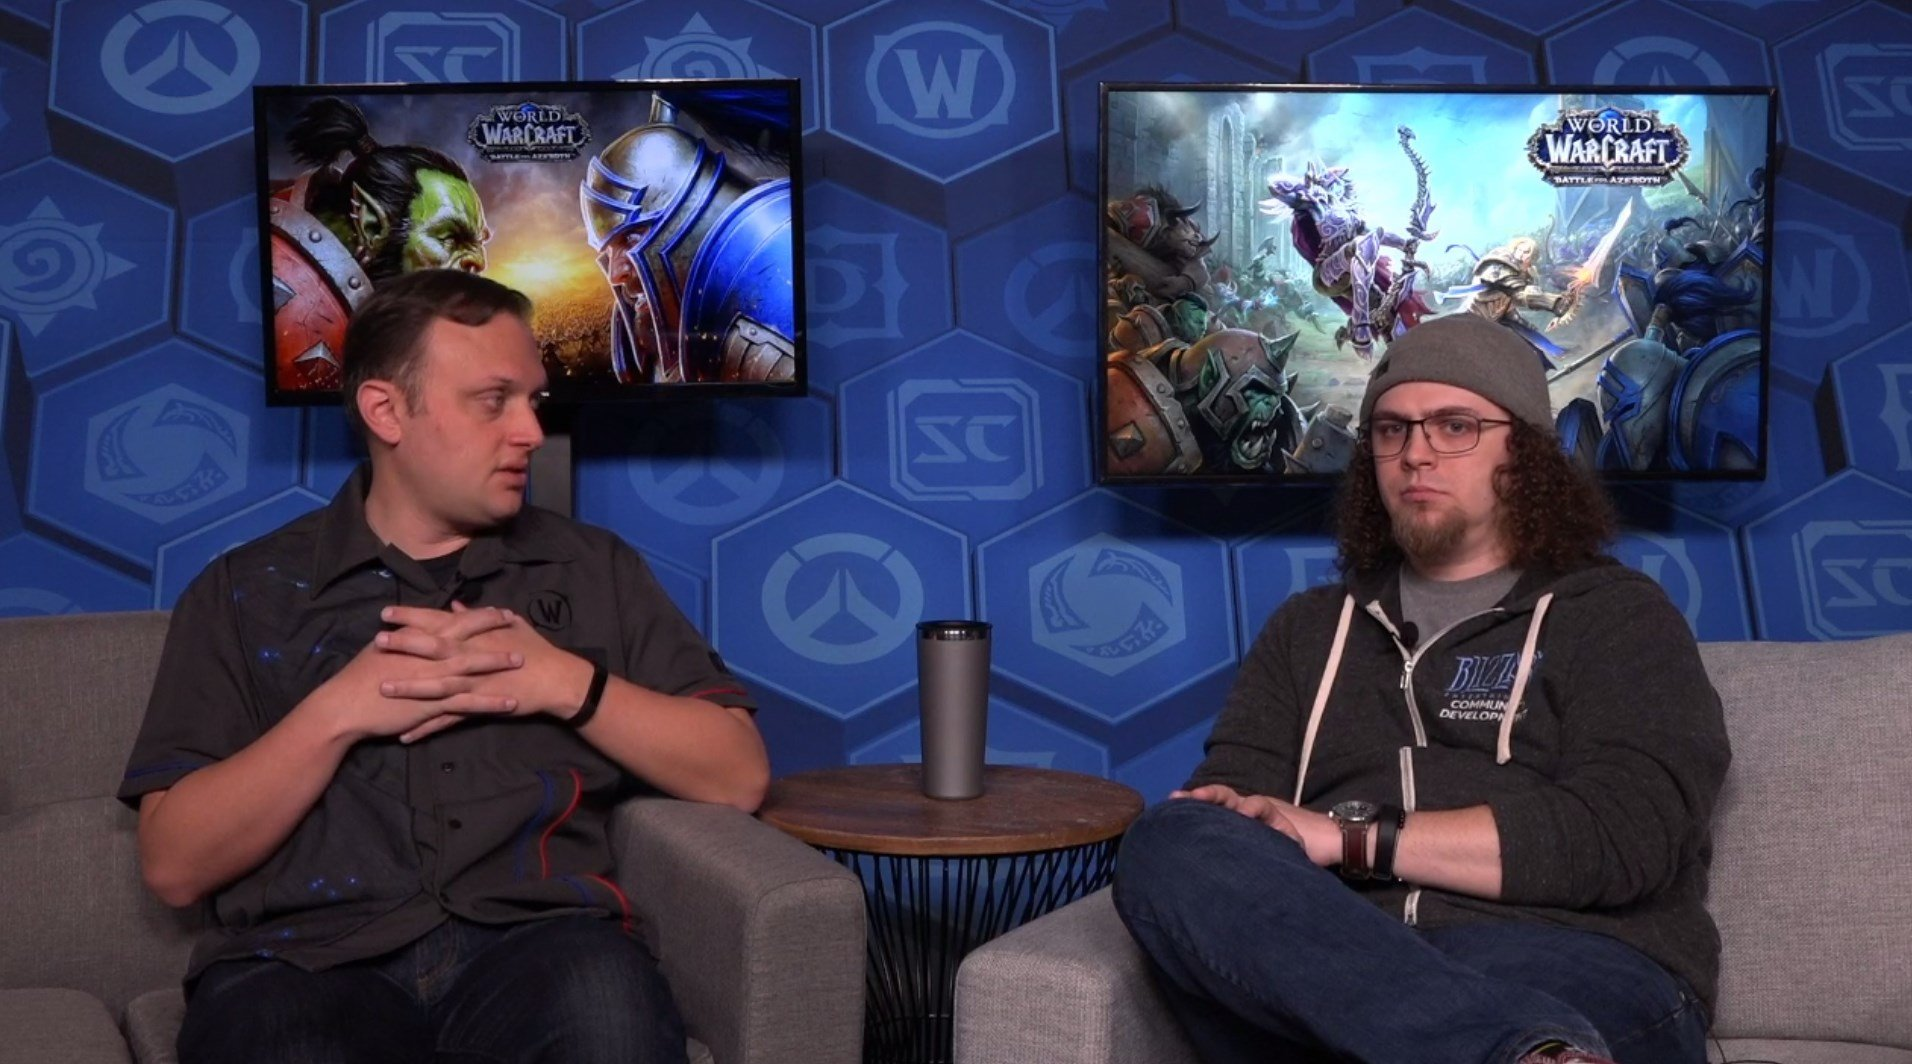 Game Director Ian Hazzikostas and Community Manager Josh Allen discuss World of Warcraft during the live Q&A.